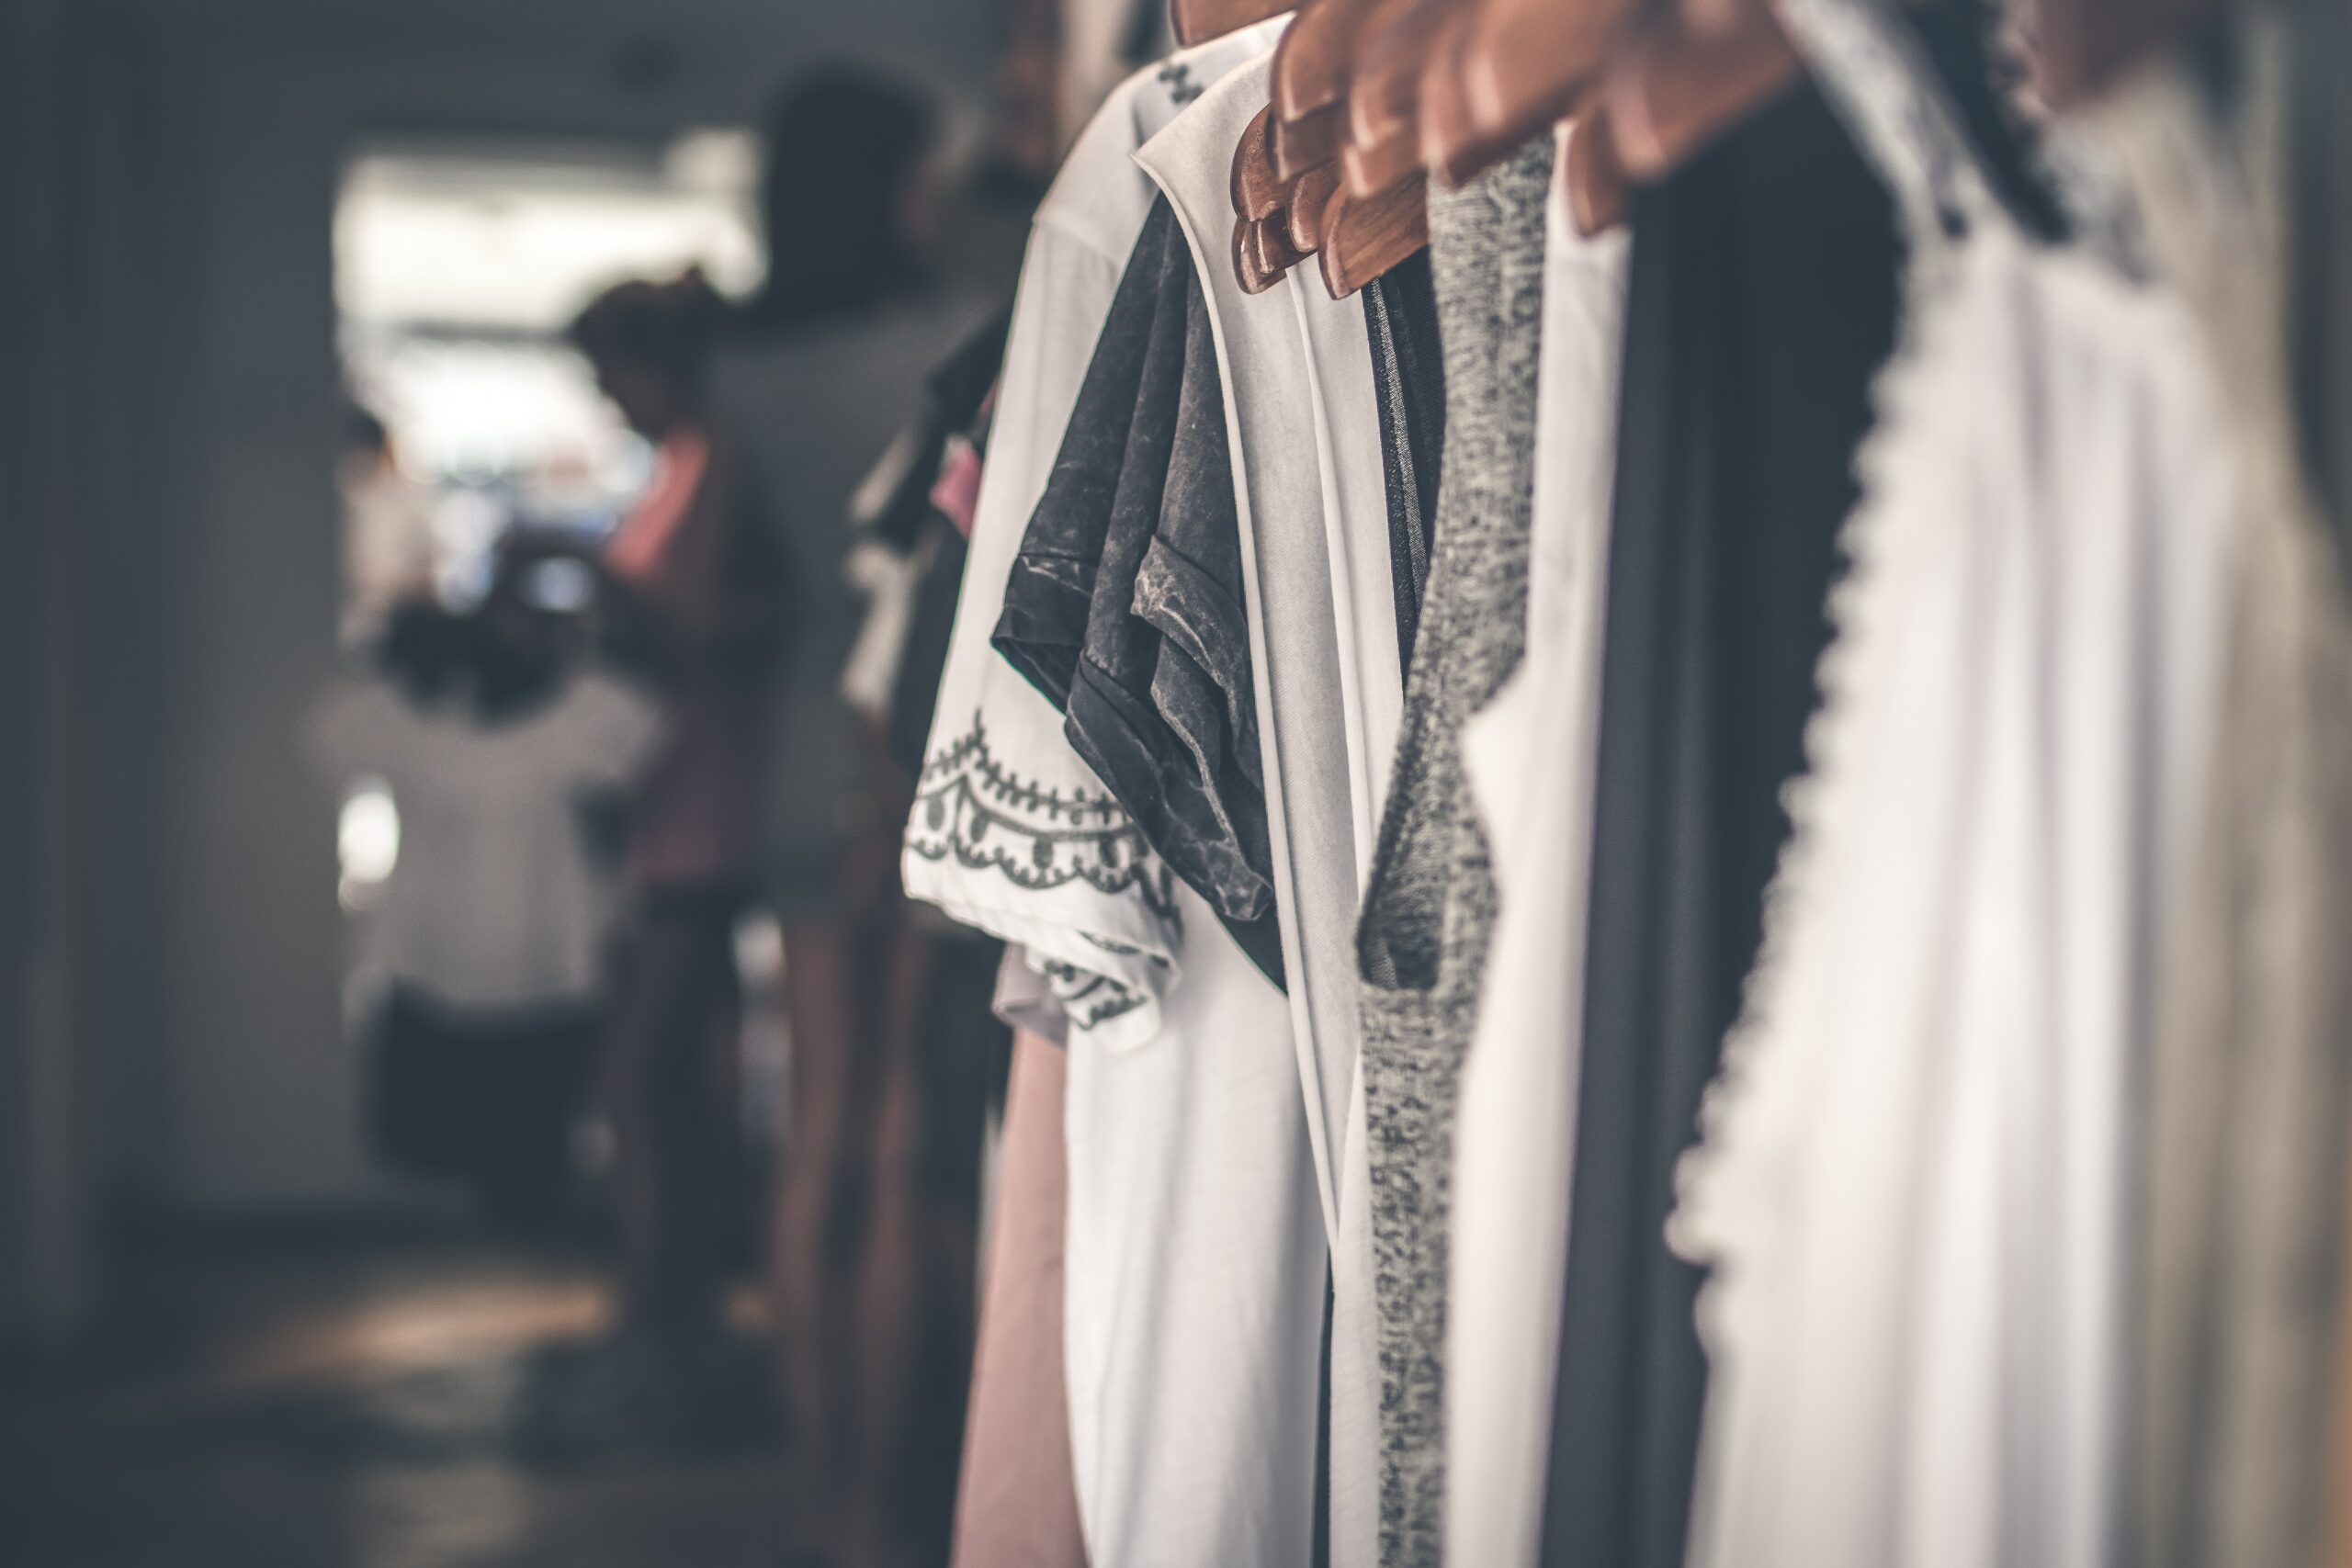 Fraying Cotton Clothes: How to Prevent Them?